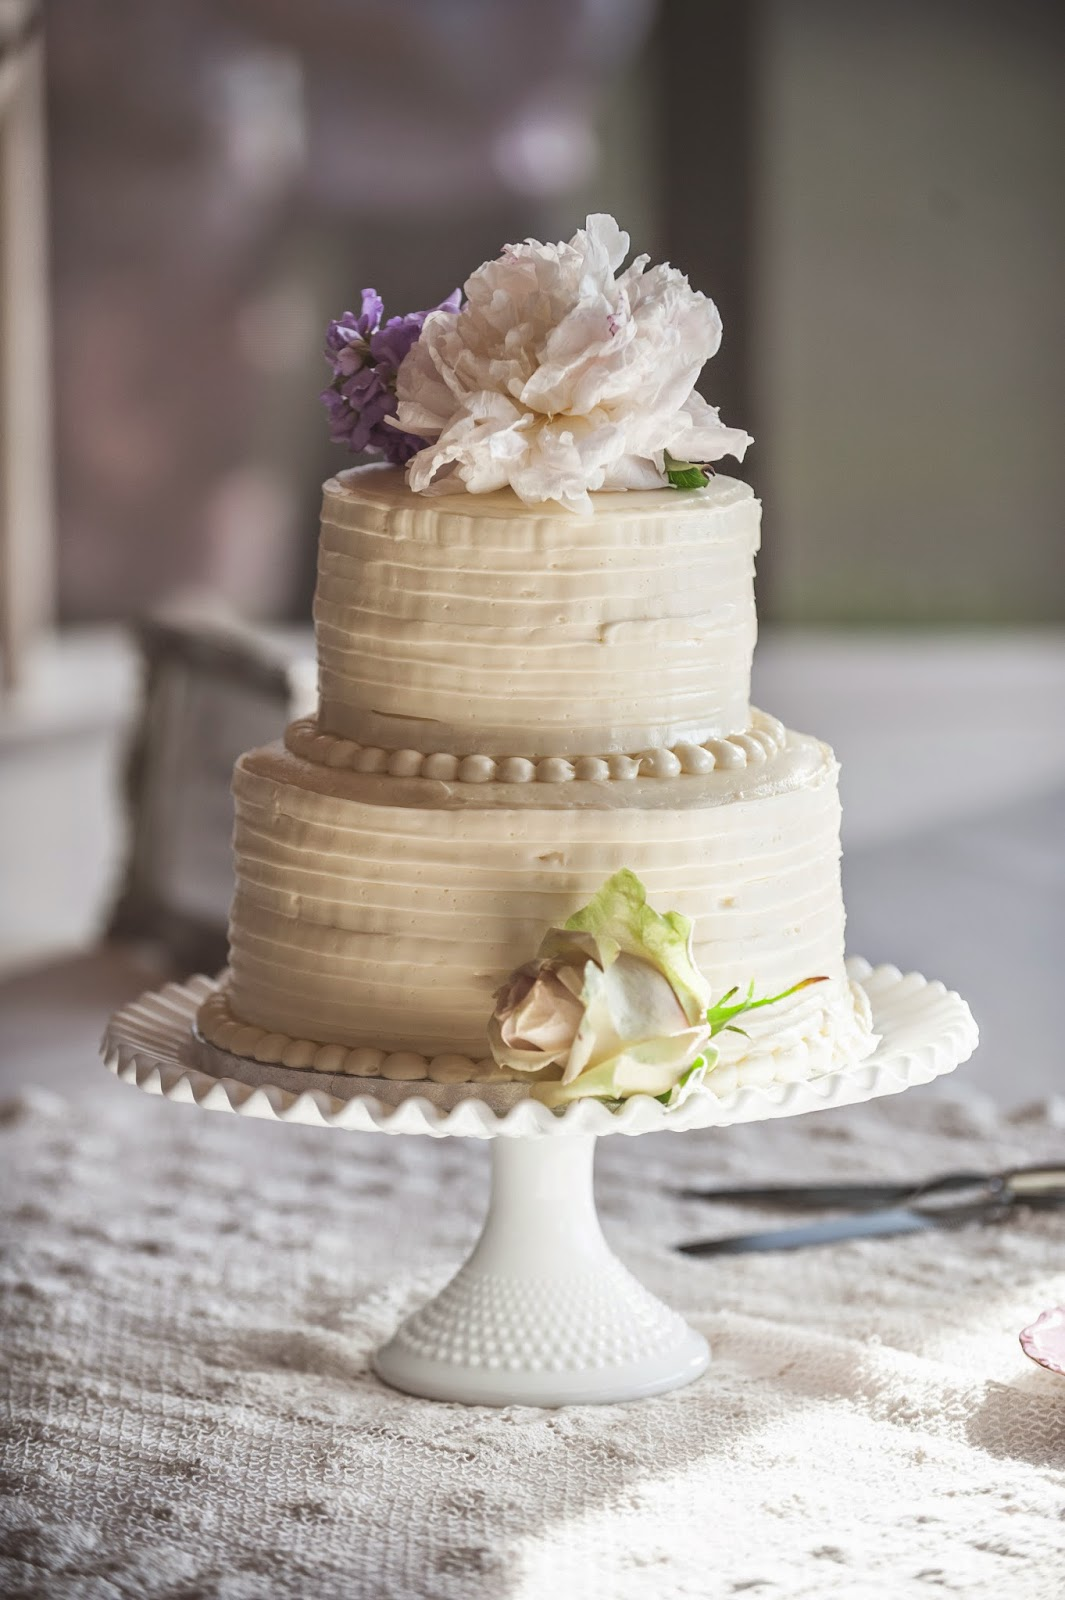 Vintage Wedding Cake with Flower Topper